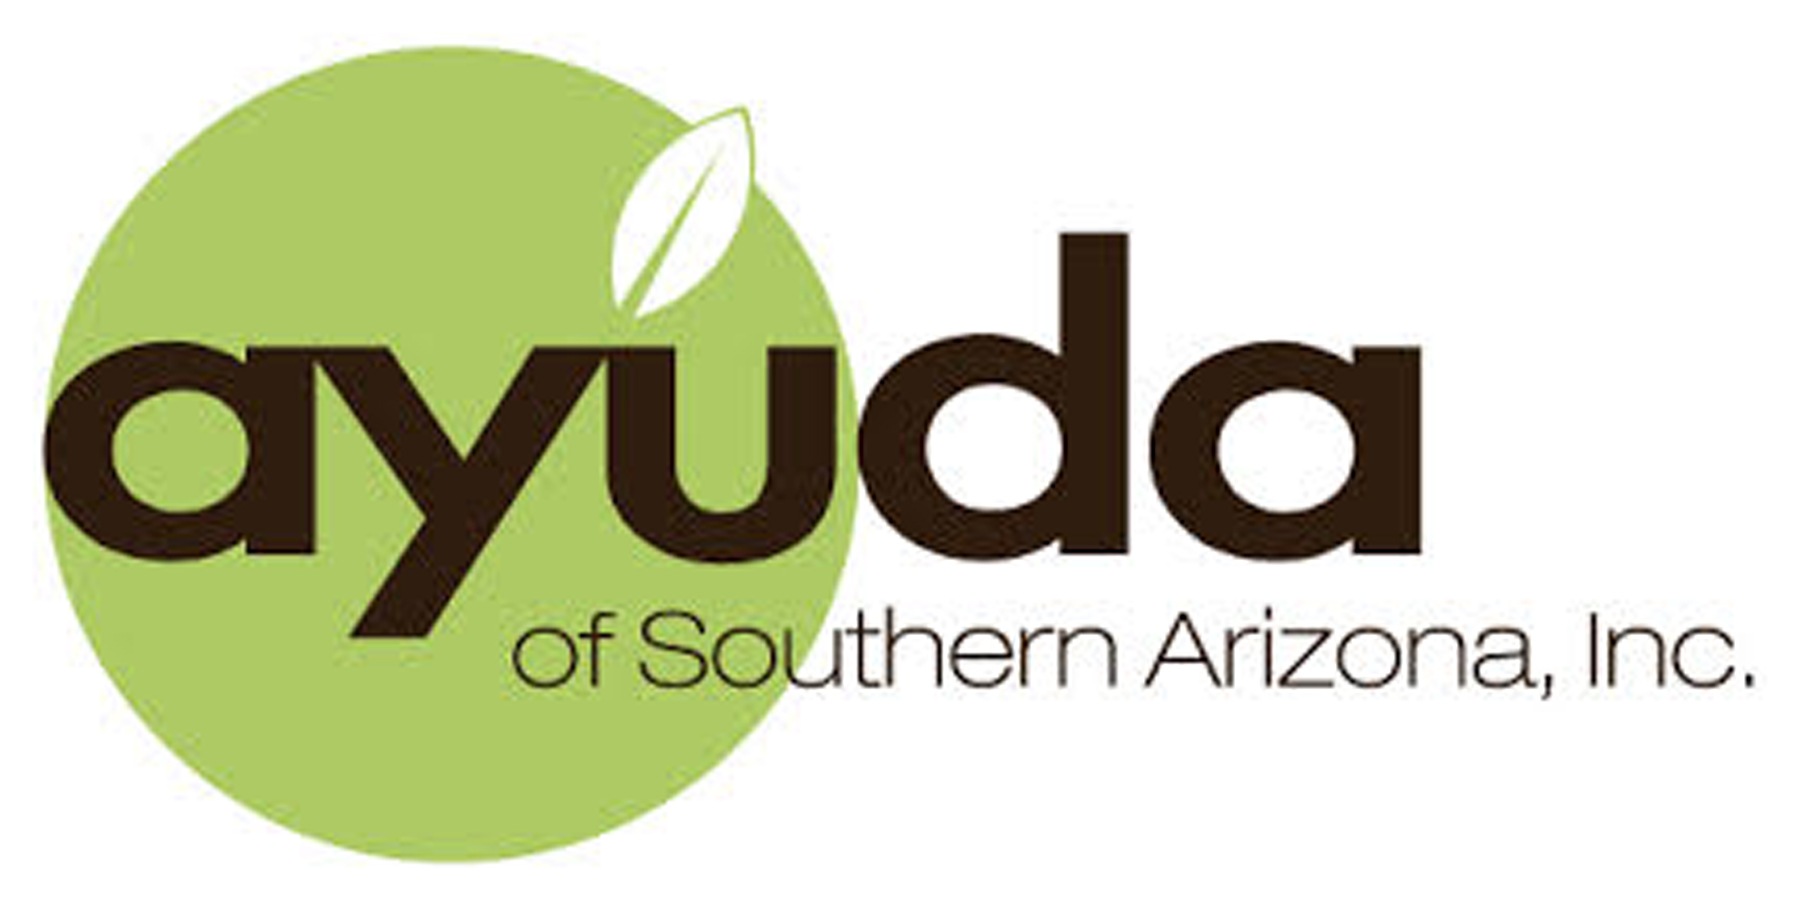 Ayuda of Southern Arizona, Inc.